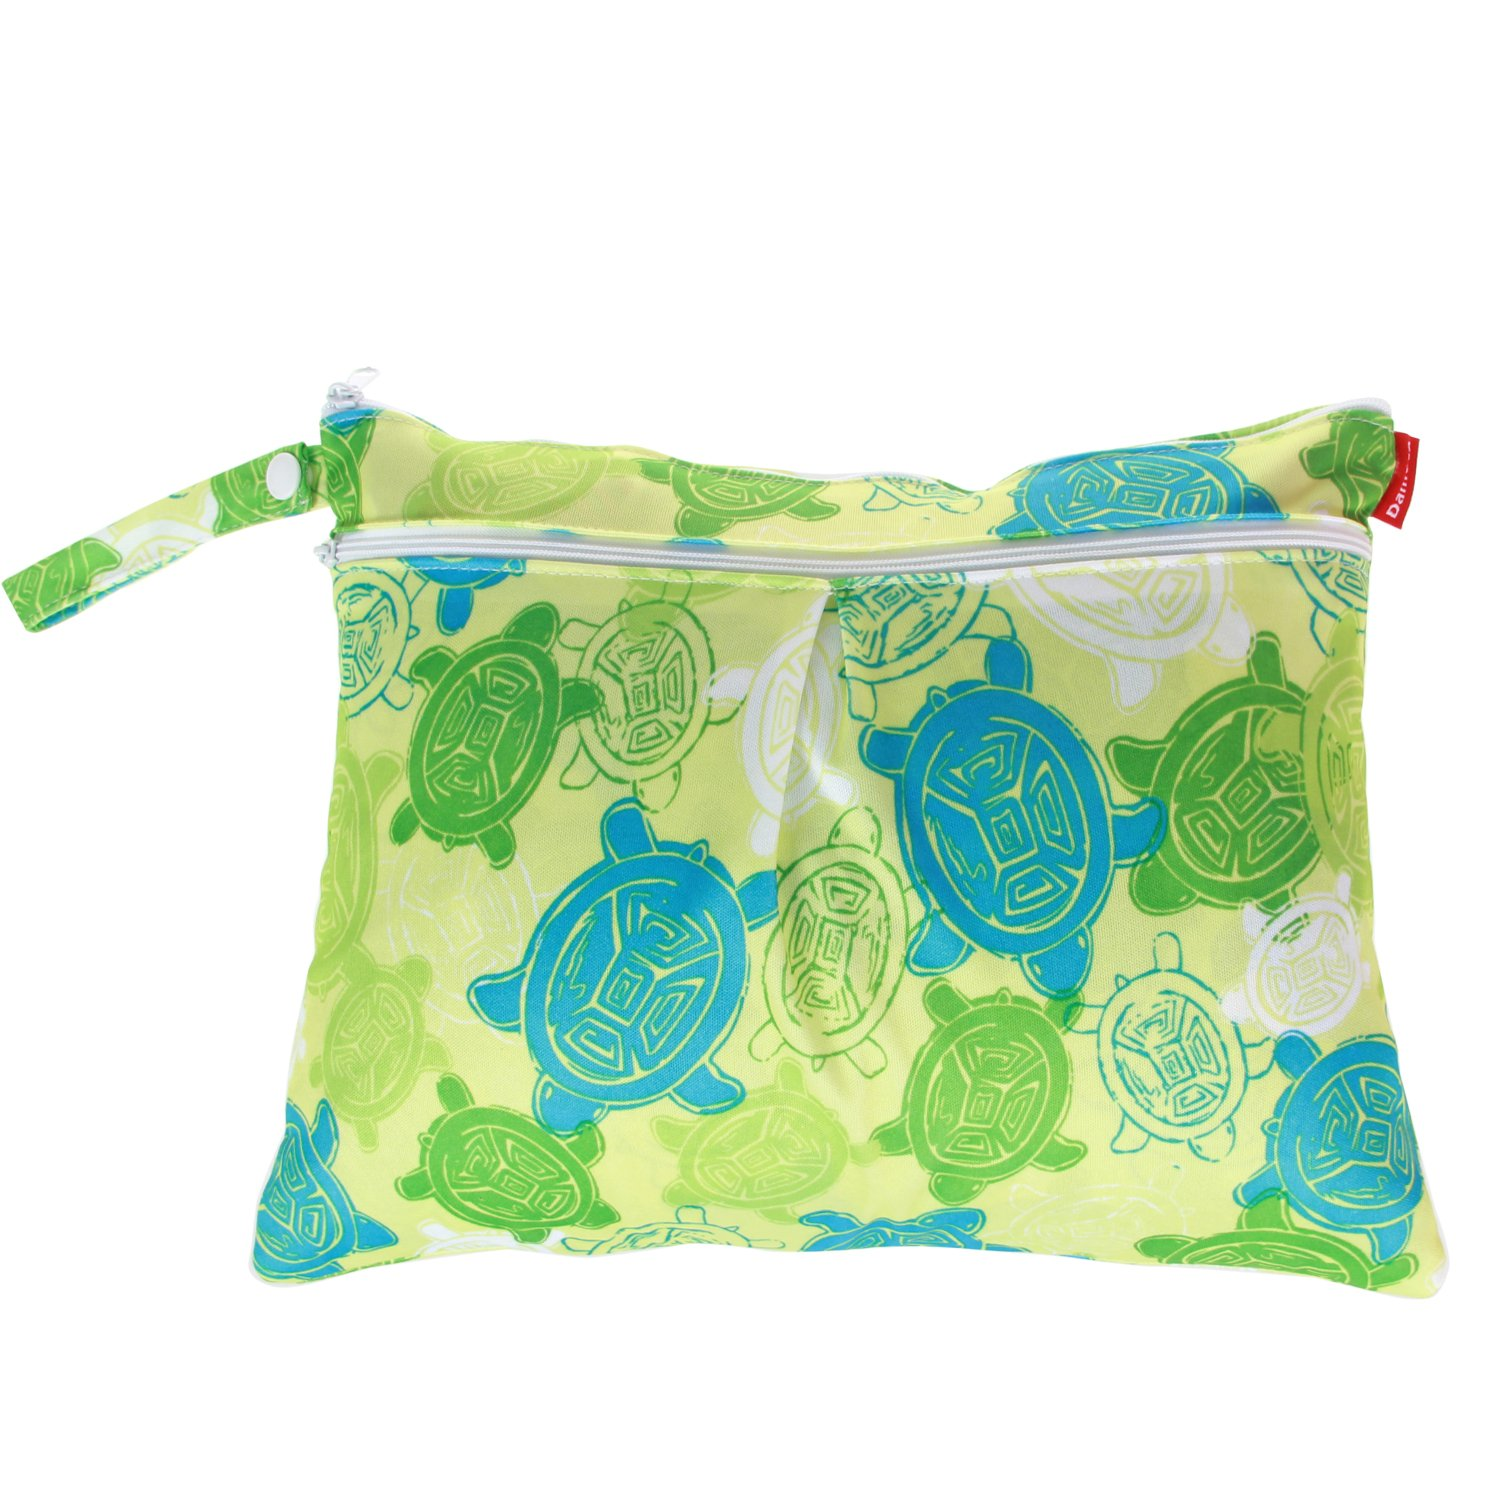 Damero 3pcs Pack Wet Dry Bag for Cloth Diapers Nappy Bag Daycare Organiser Bag Cute Owls